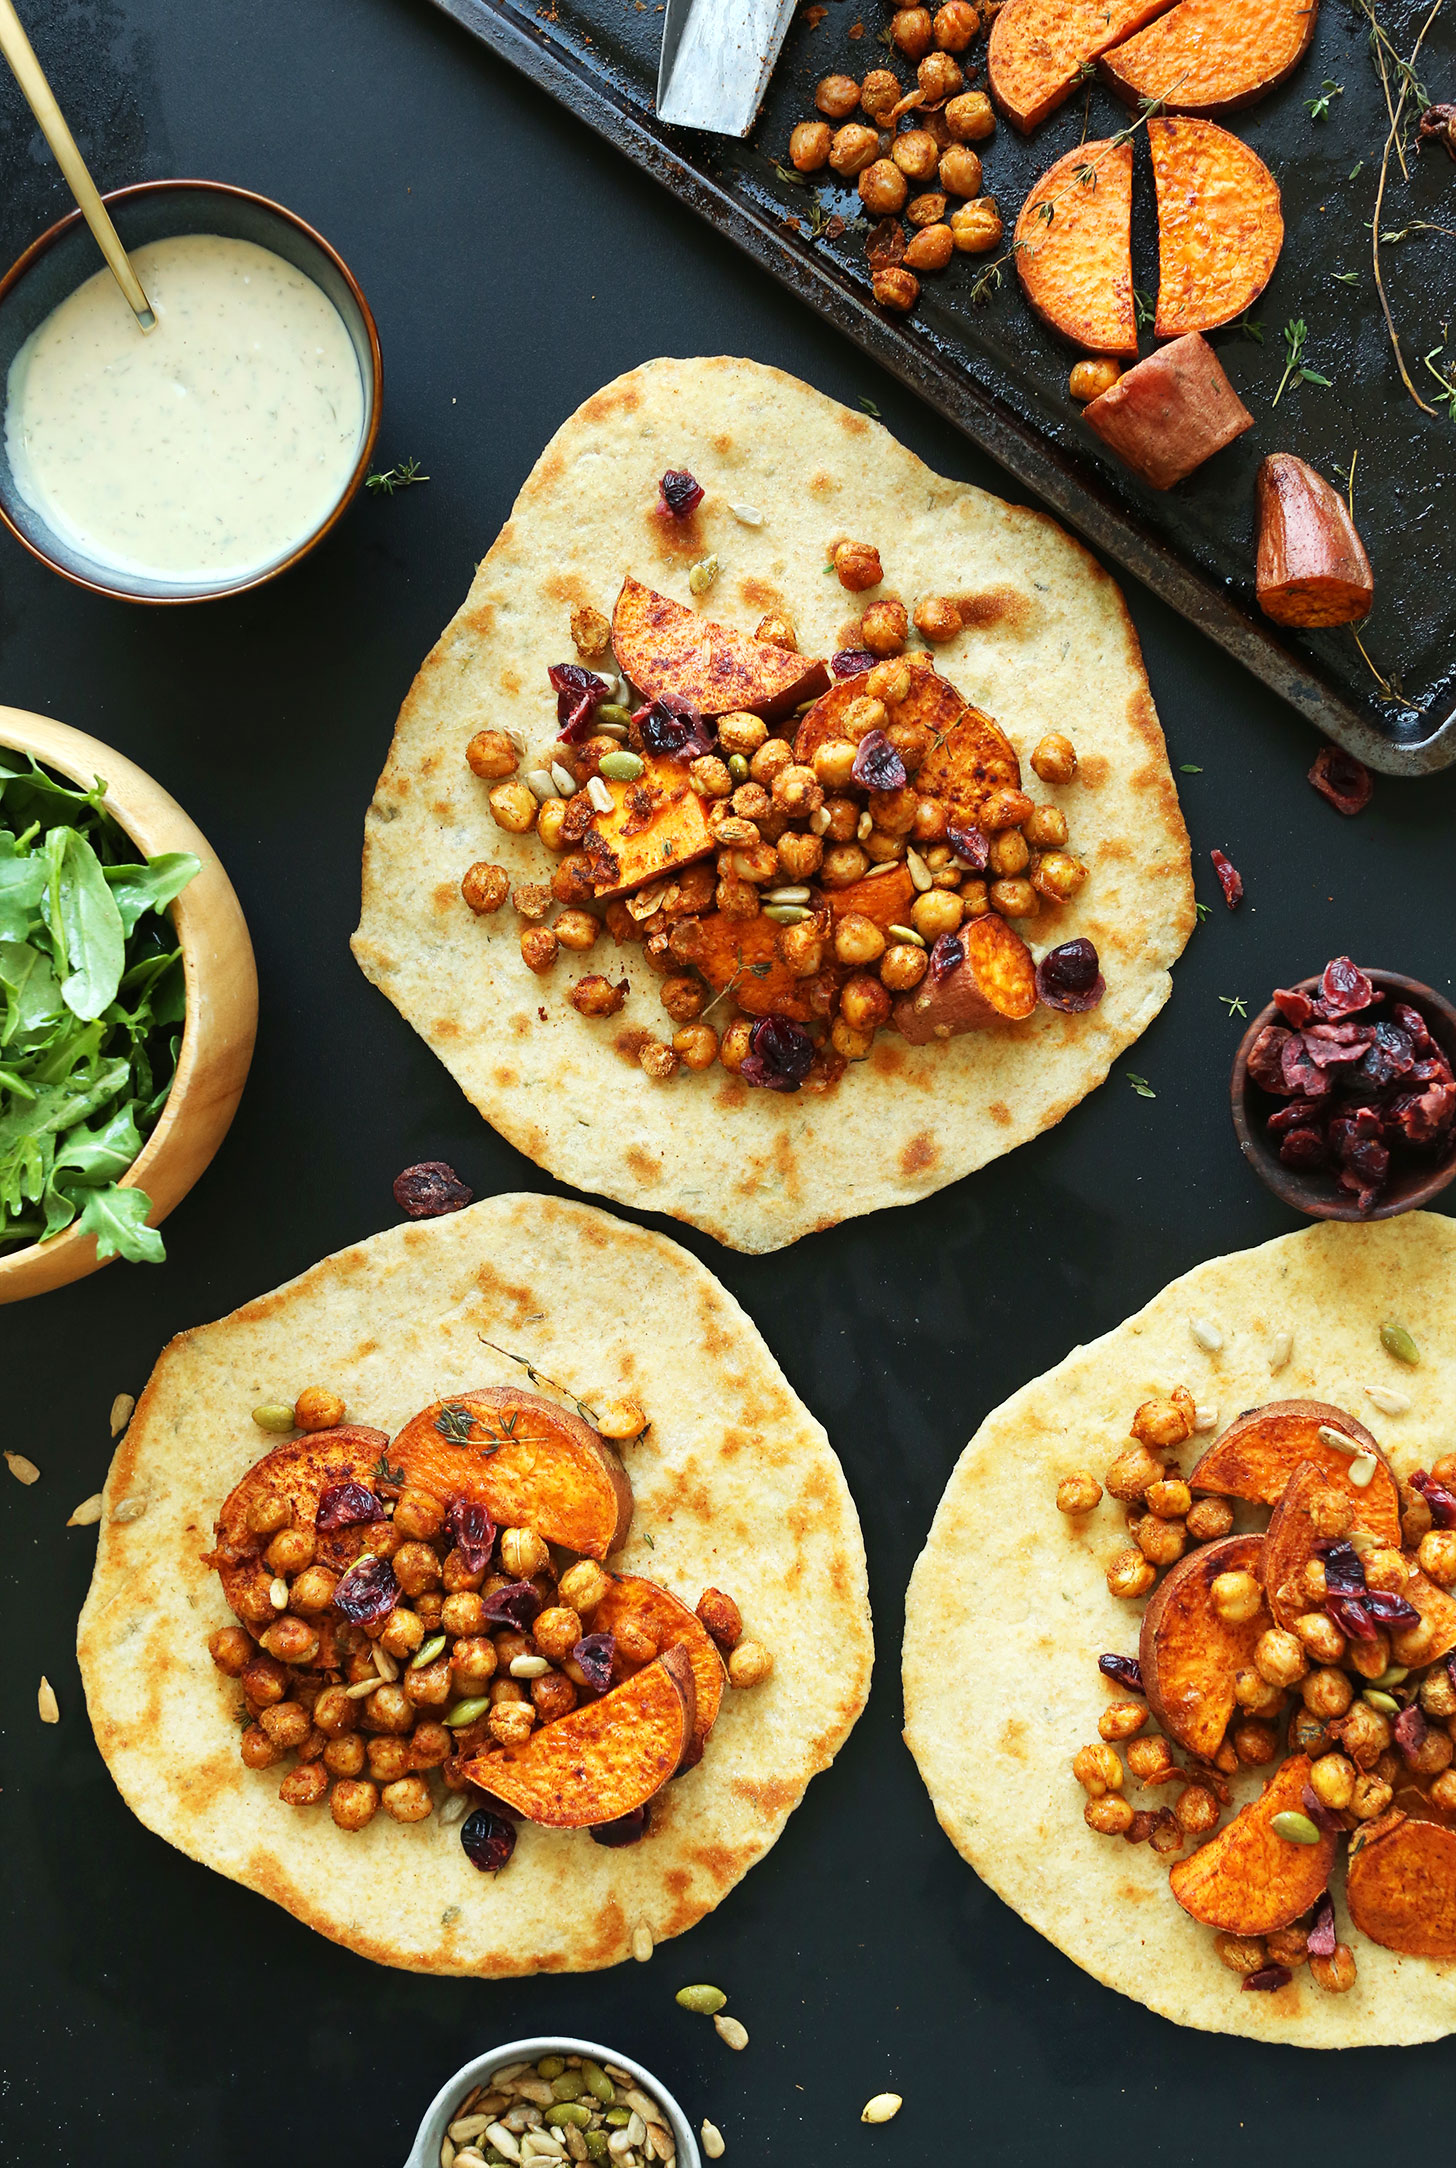 Vegan Thanksgiving wraps made with chickpeas, sweet potatoes, cranberries, and fresh greens